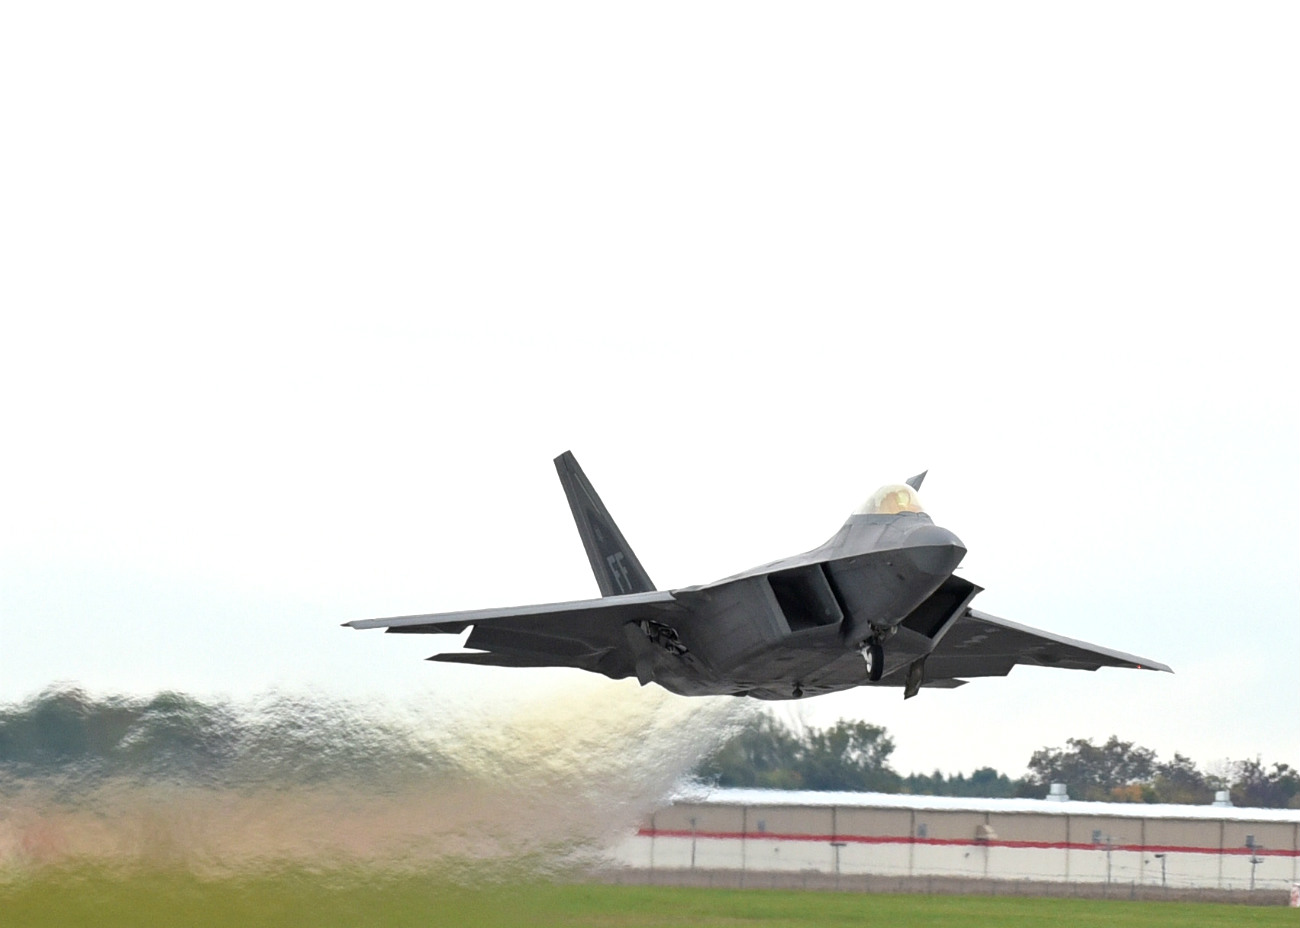 F-22 takes off US fighter jet images